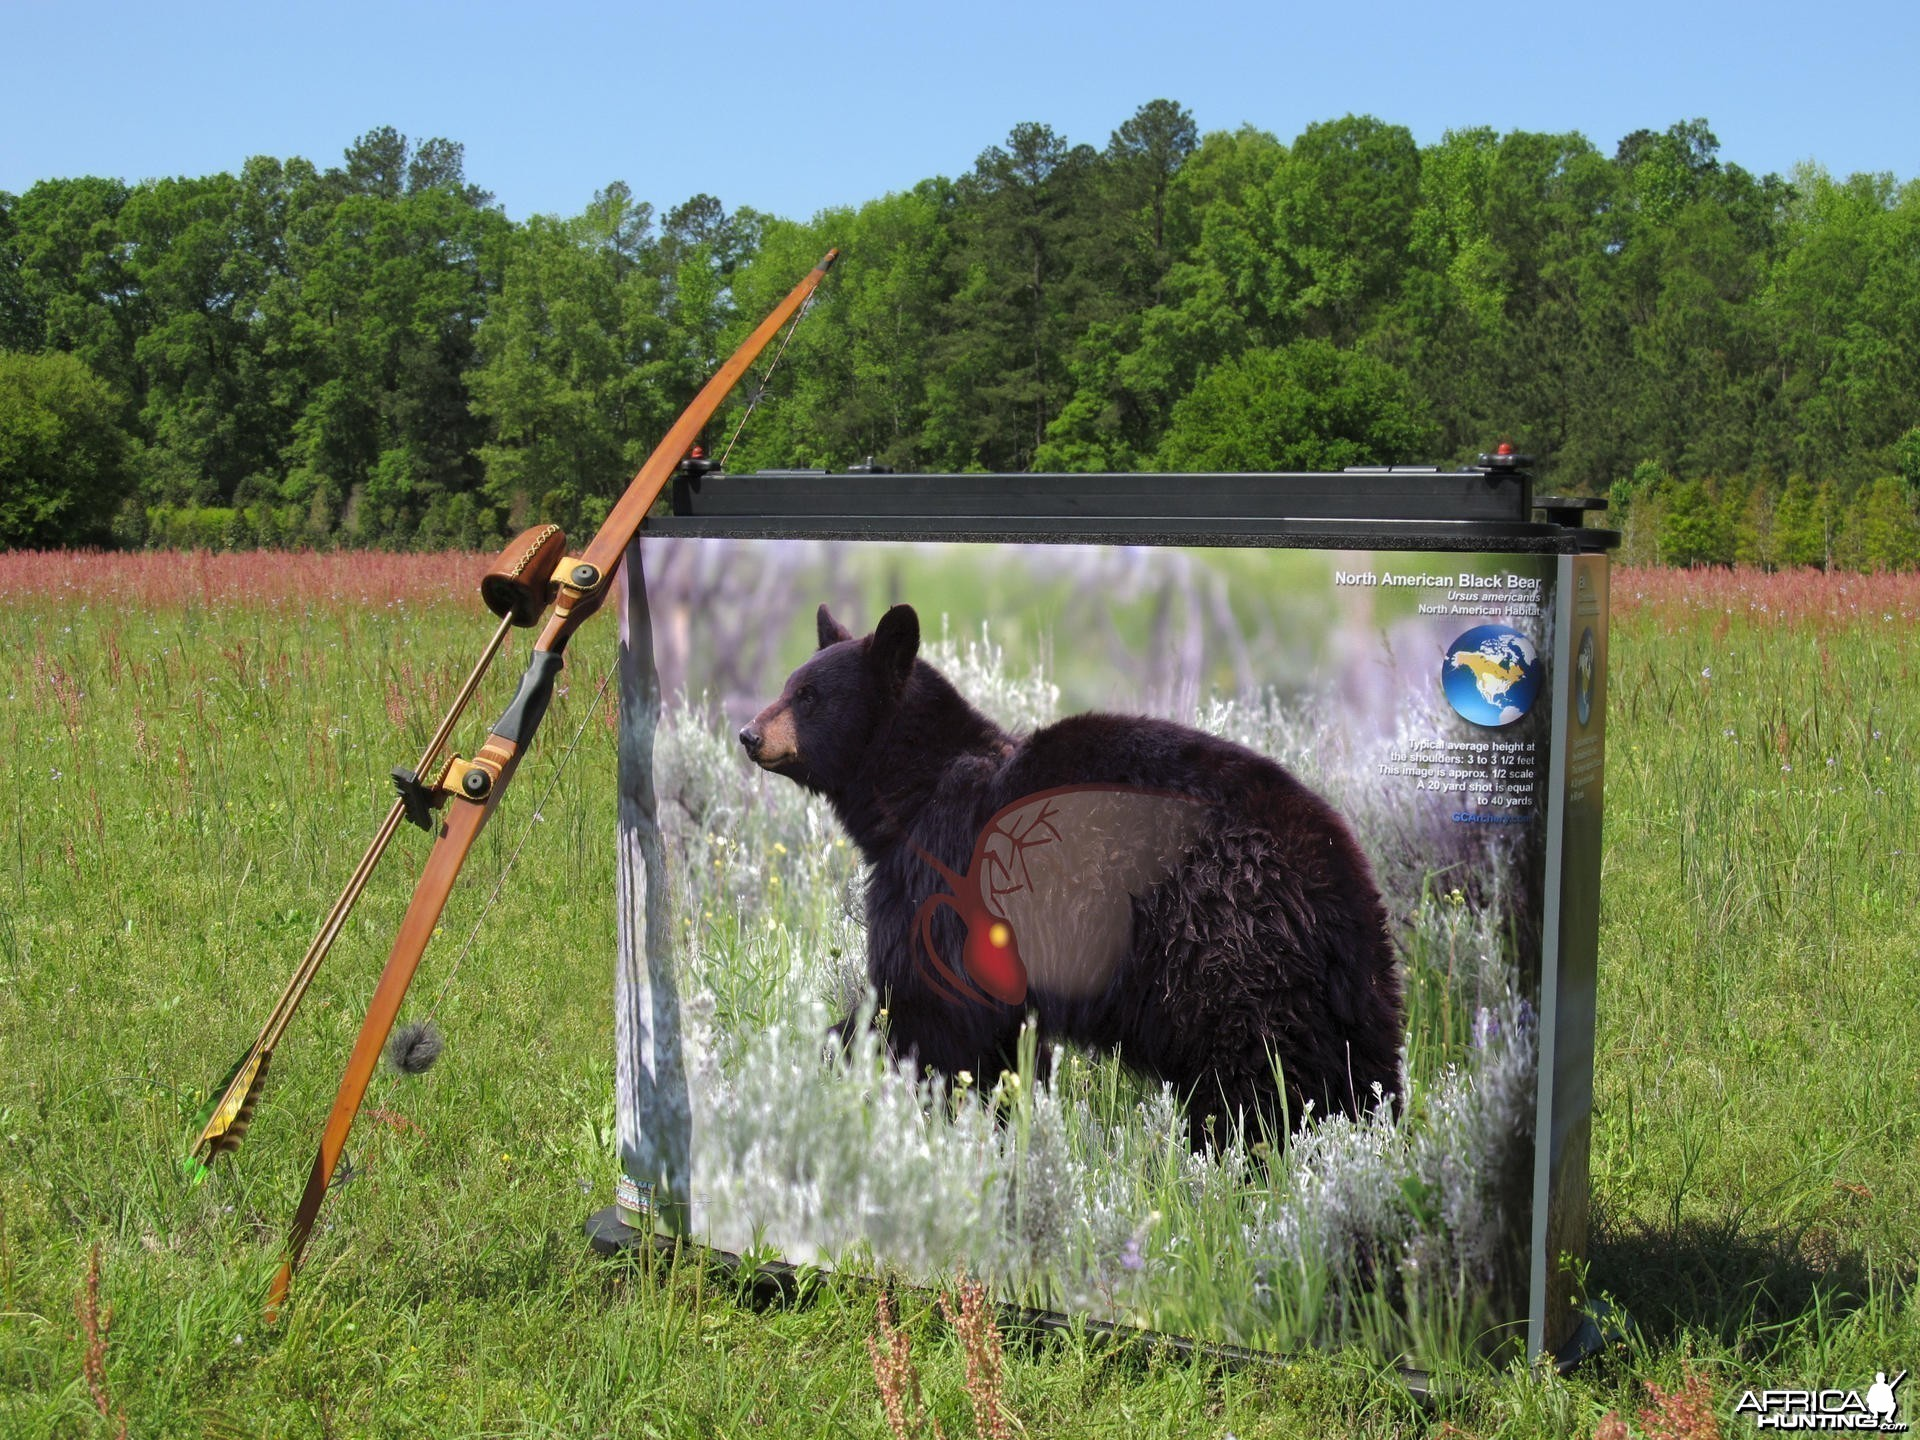 GameChanger Archery Target Systems